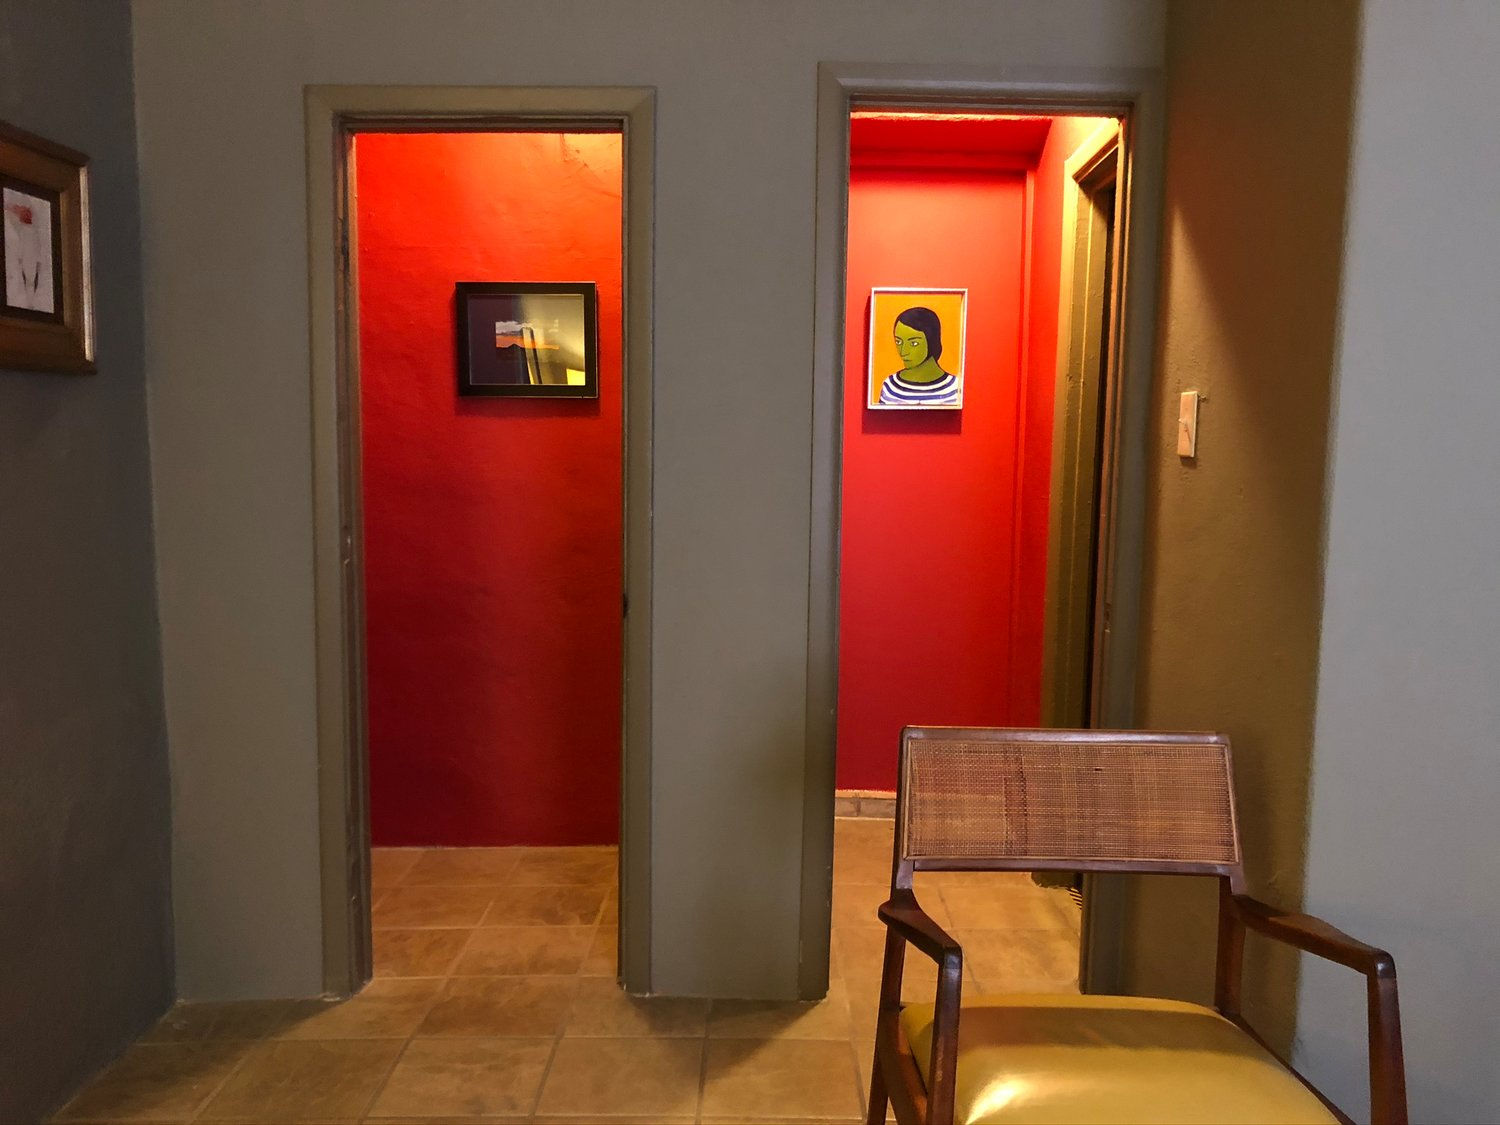 Mandrake Fine Art & Botanica Gallery is a work of art itself with its designed nooks and quiet walls.